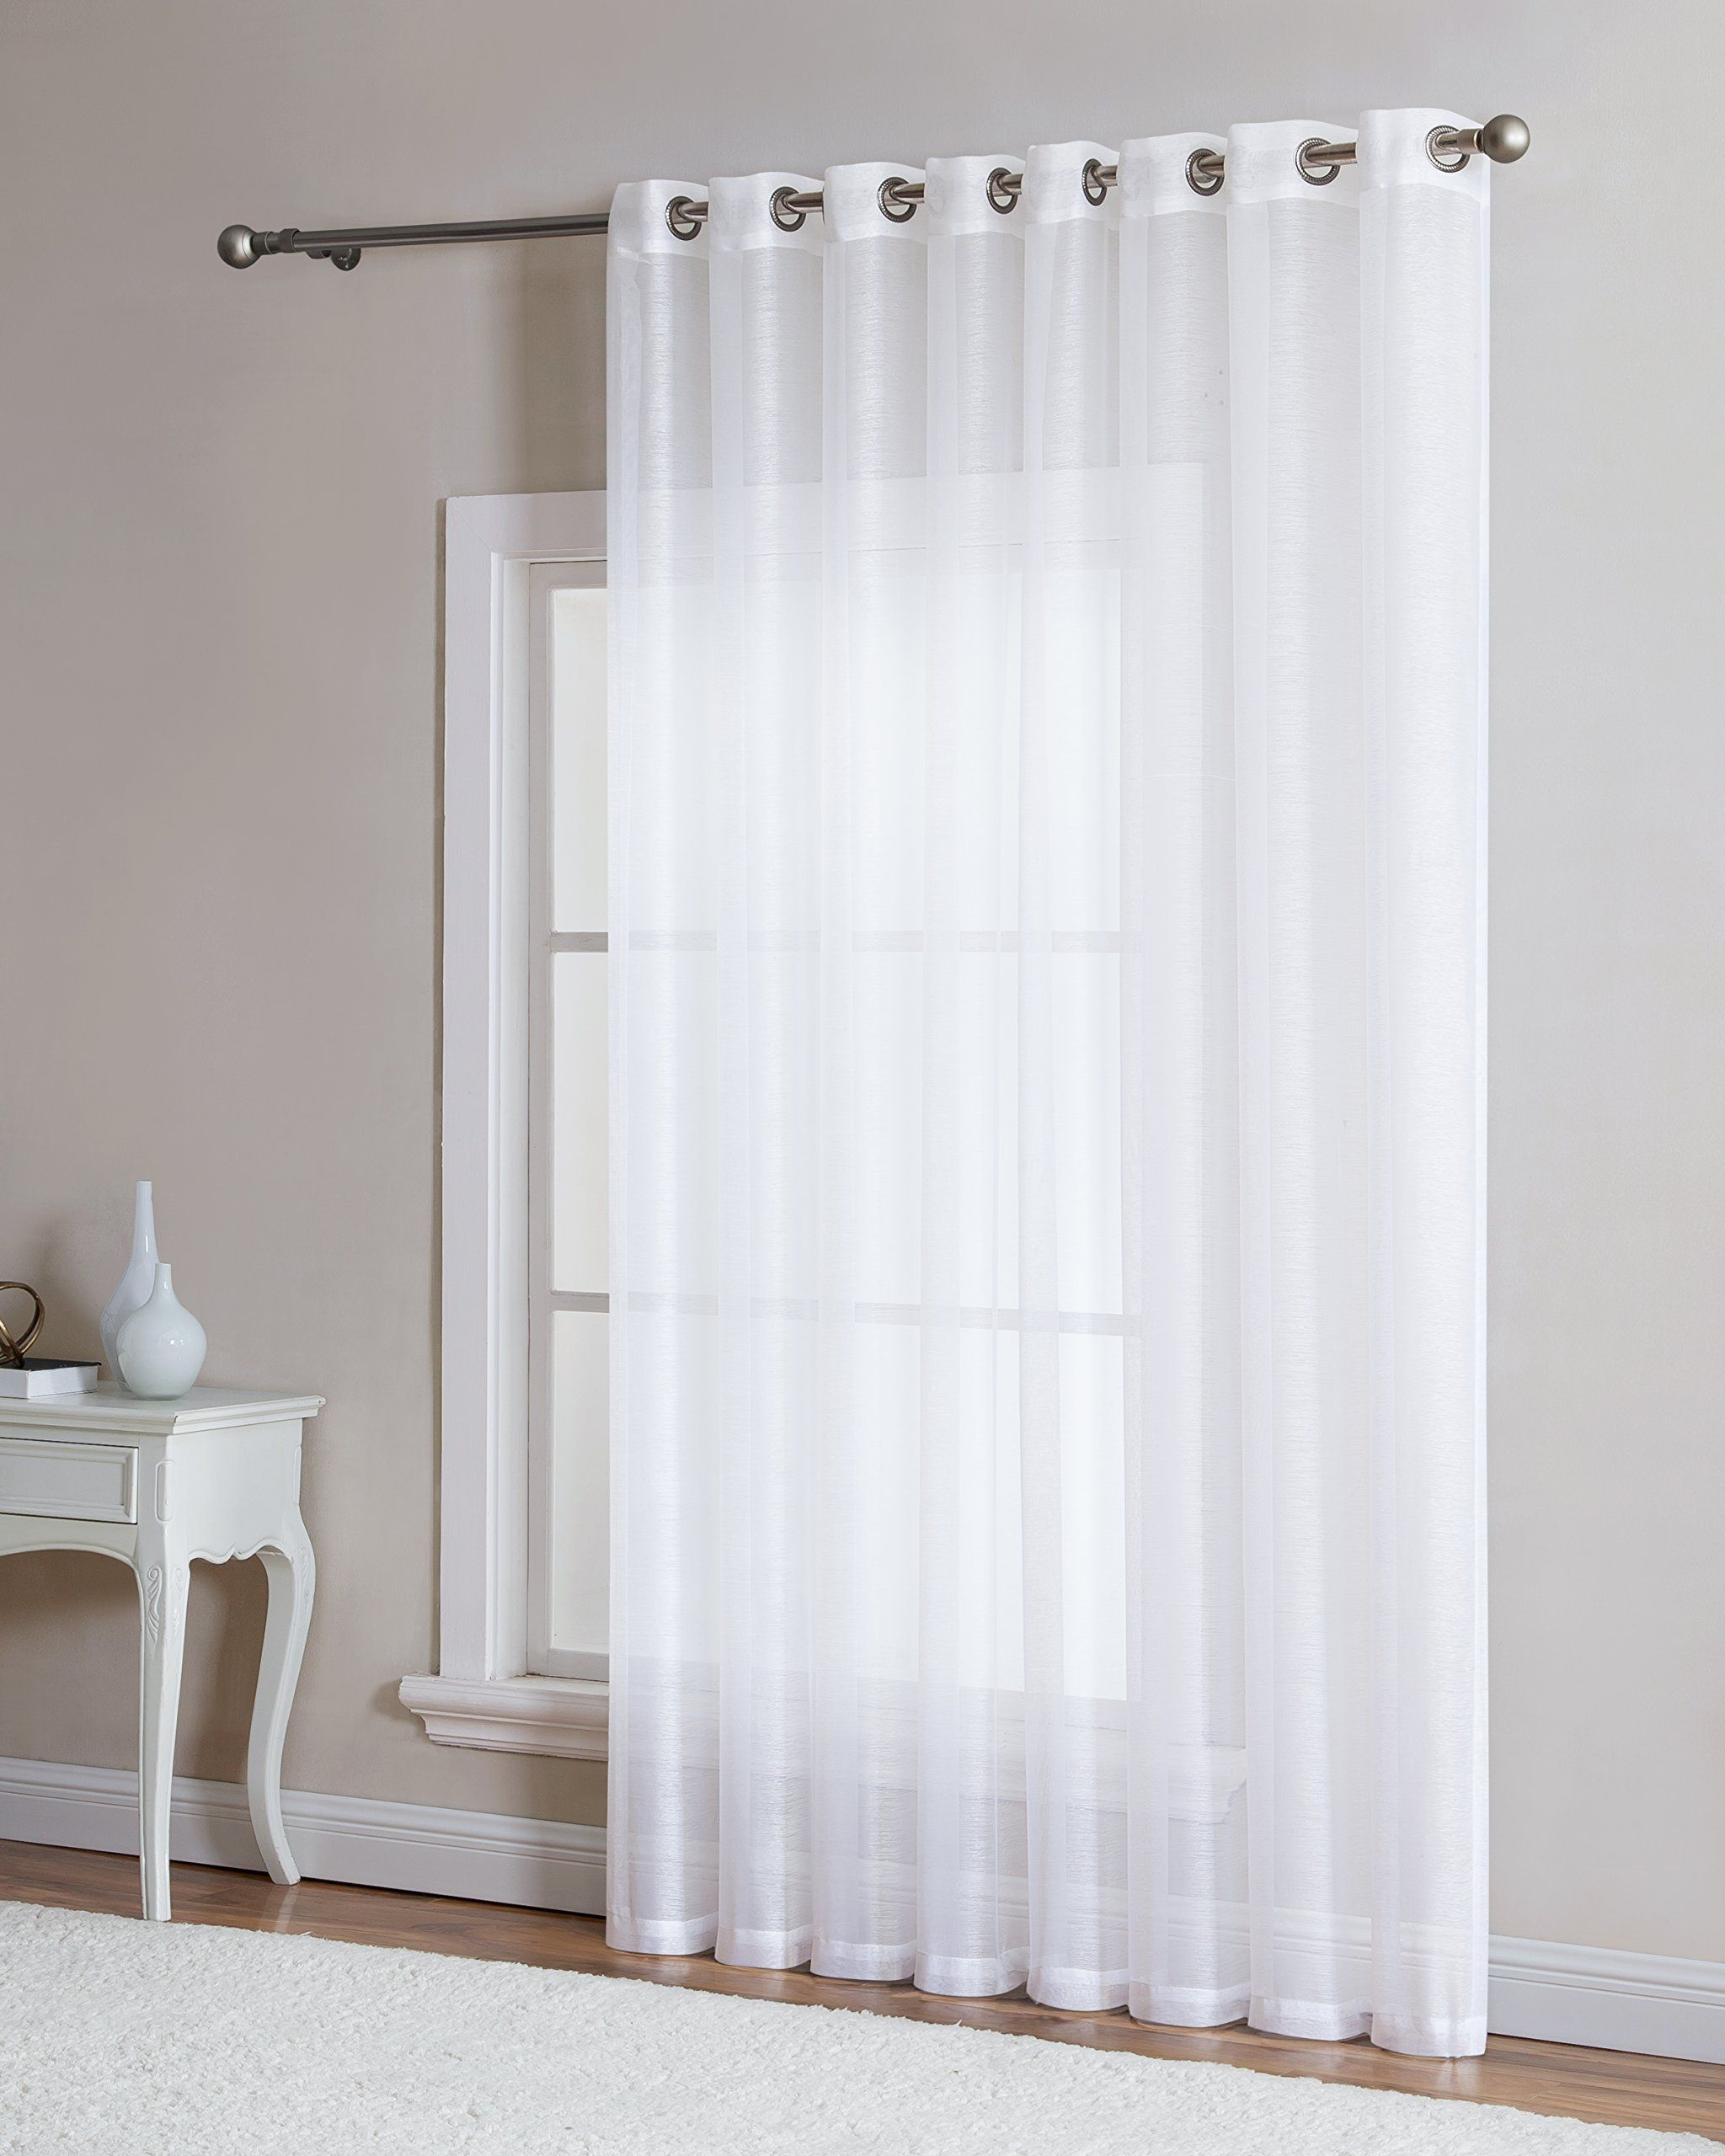 Linenzone Grommet Semi Sheer 1 Extra Wide Patio Curtain Panel 102 Inch Wide 84 Inch Long Ideal For Cool Curtains Door Curtains Sliding Door Curtains